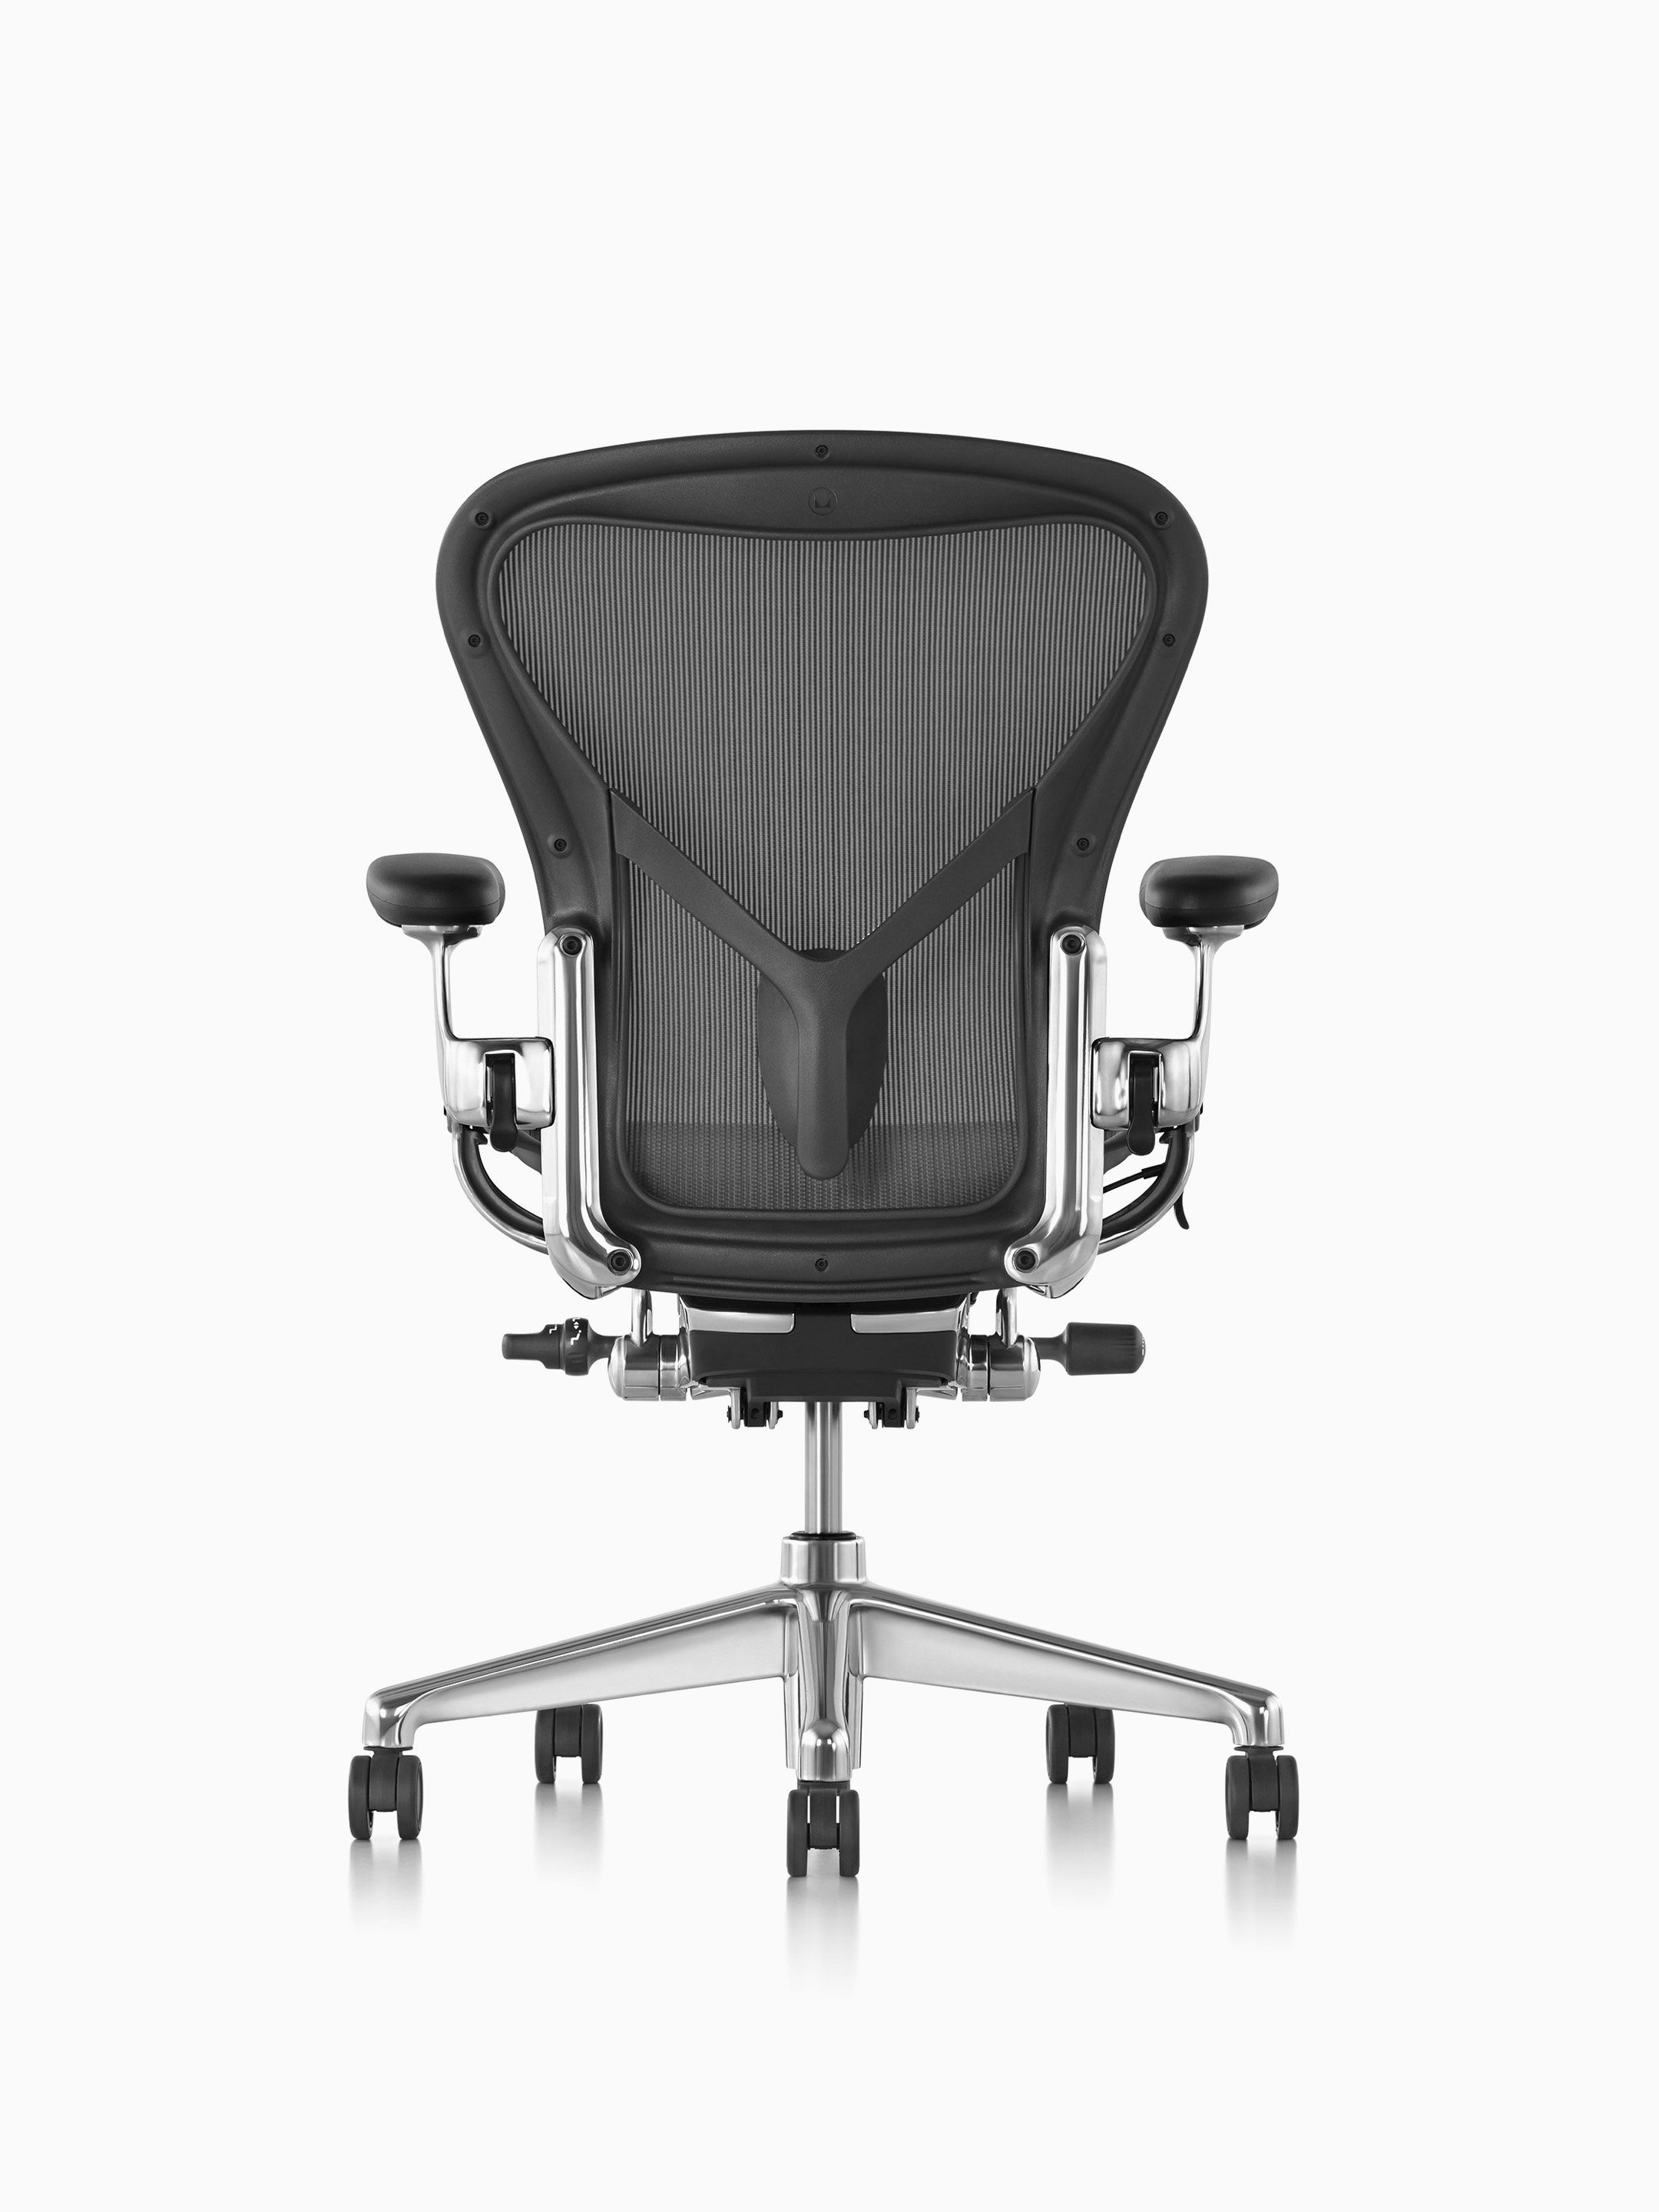 13a84ebd4bd Aeron - Office Chairs - Herman Miller